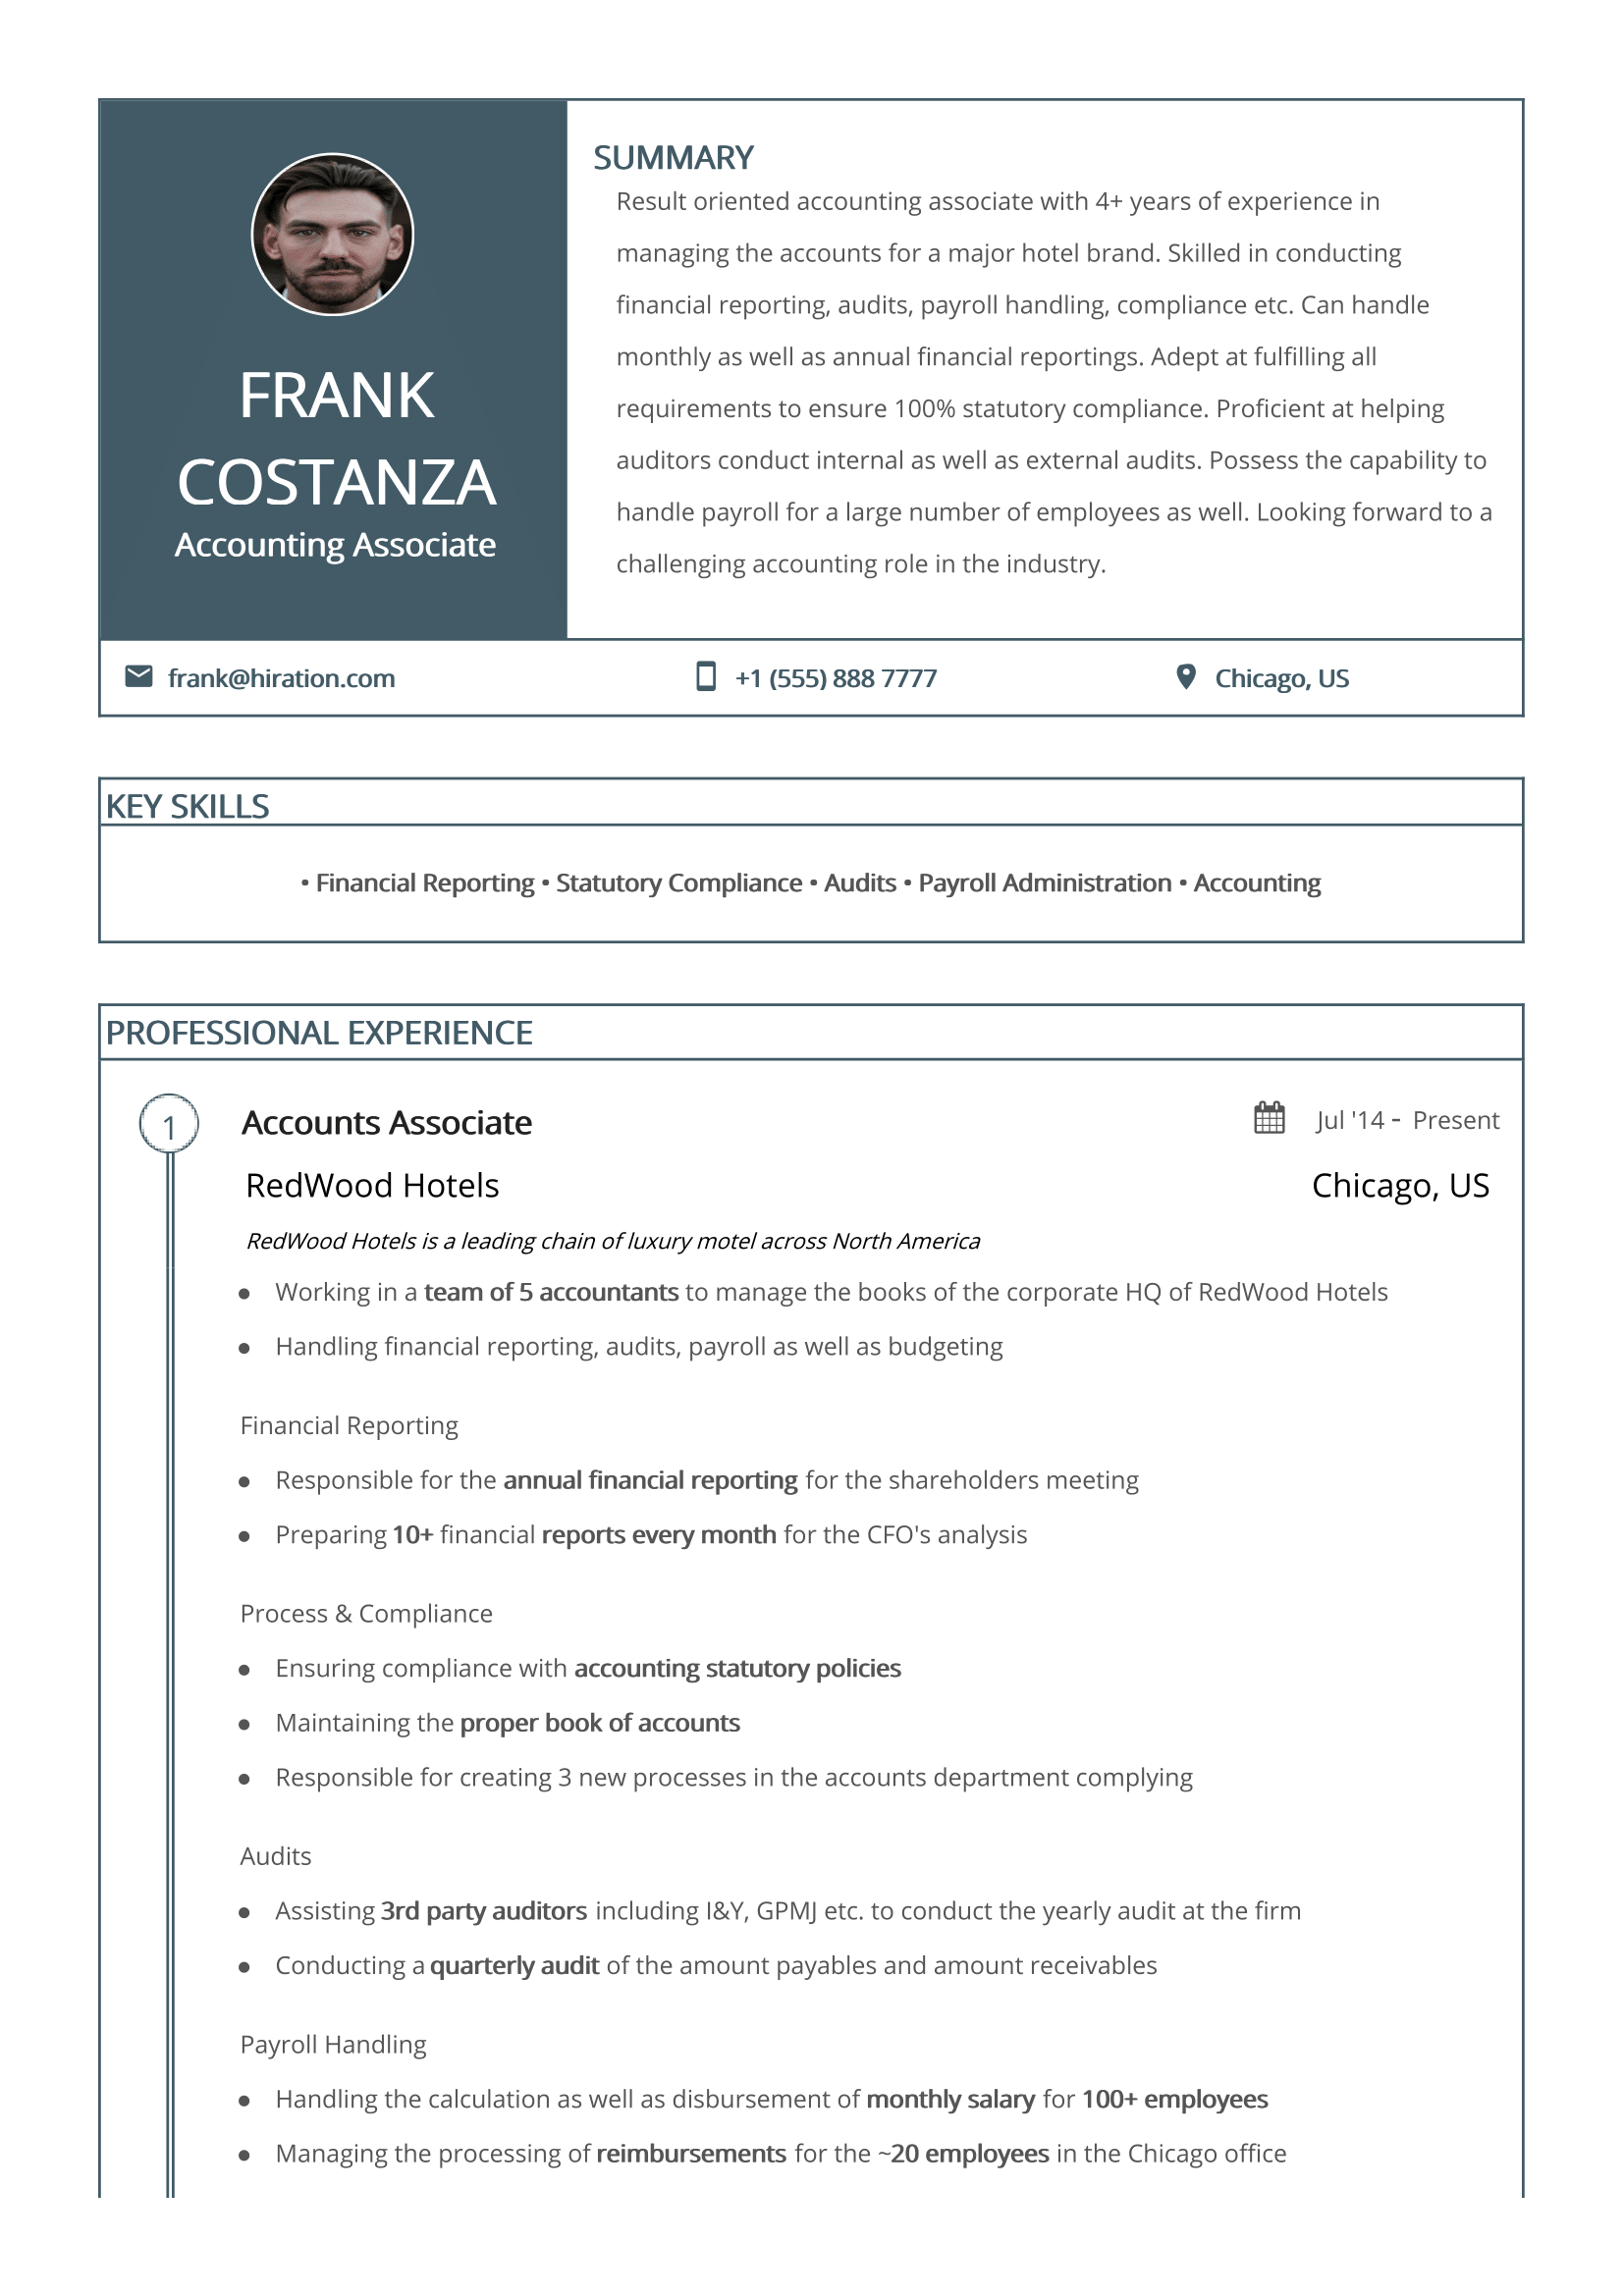 FRANK_COSTANZA_Accounting_Associate-1